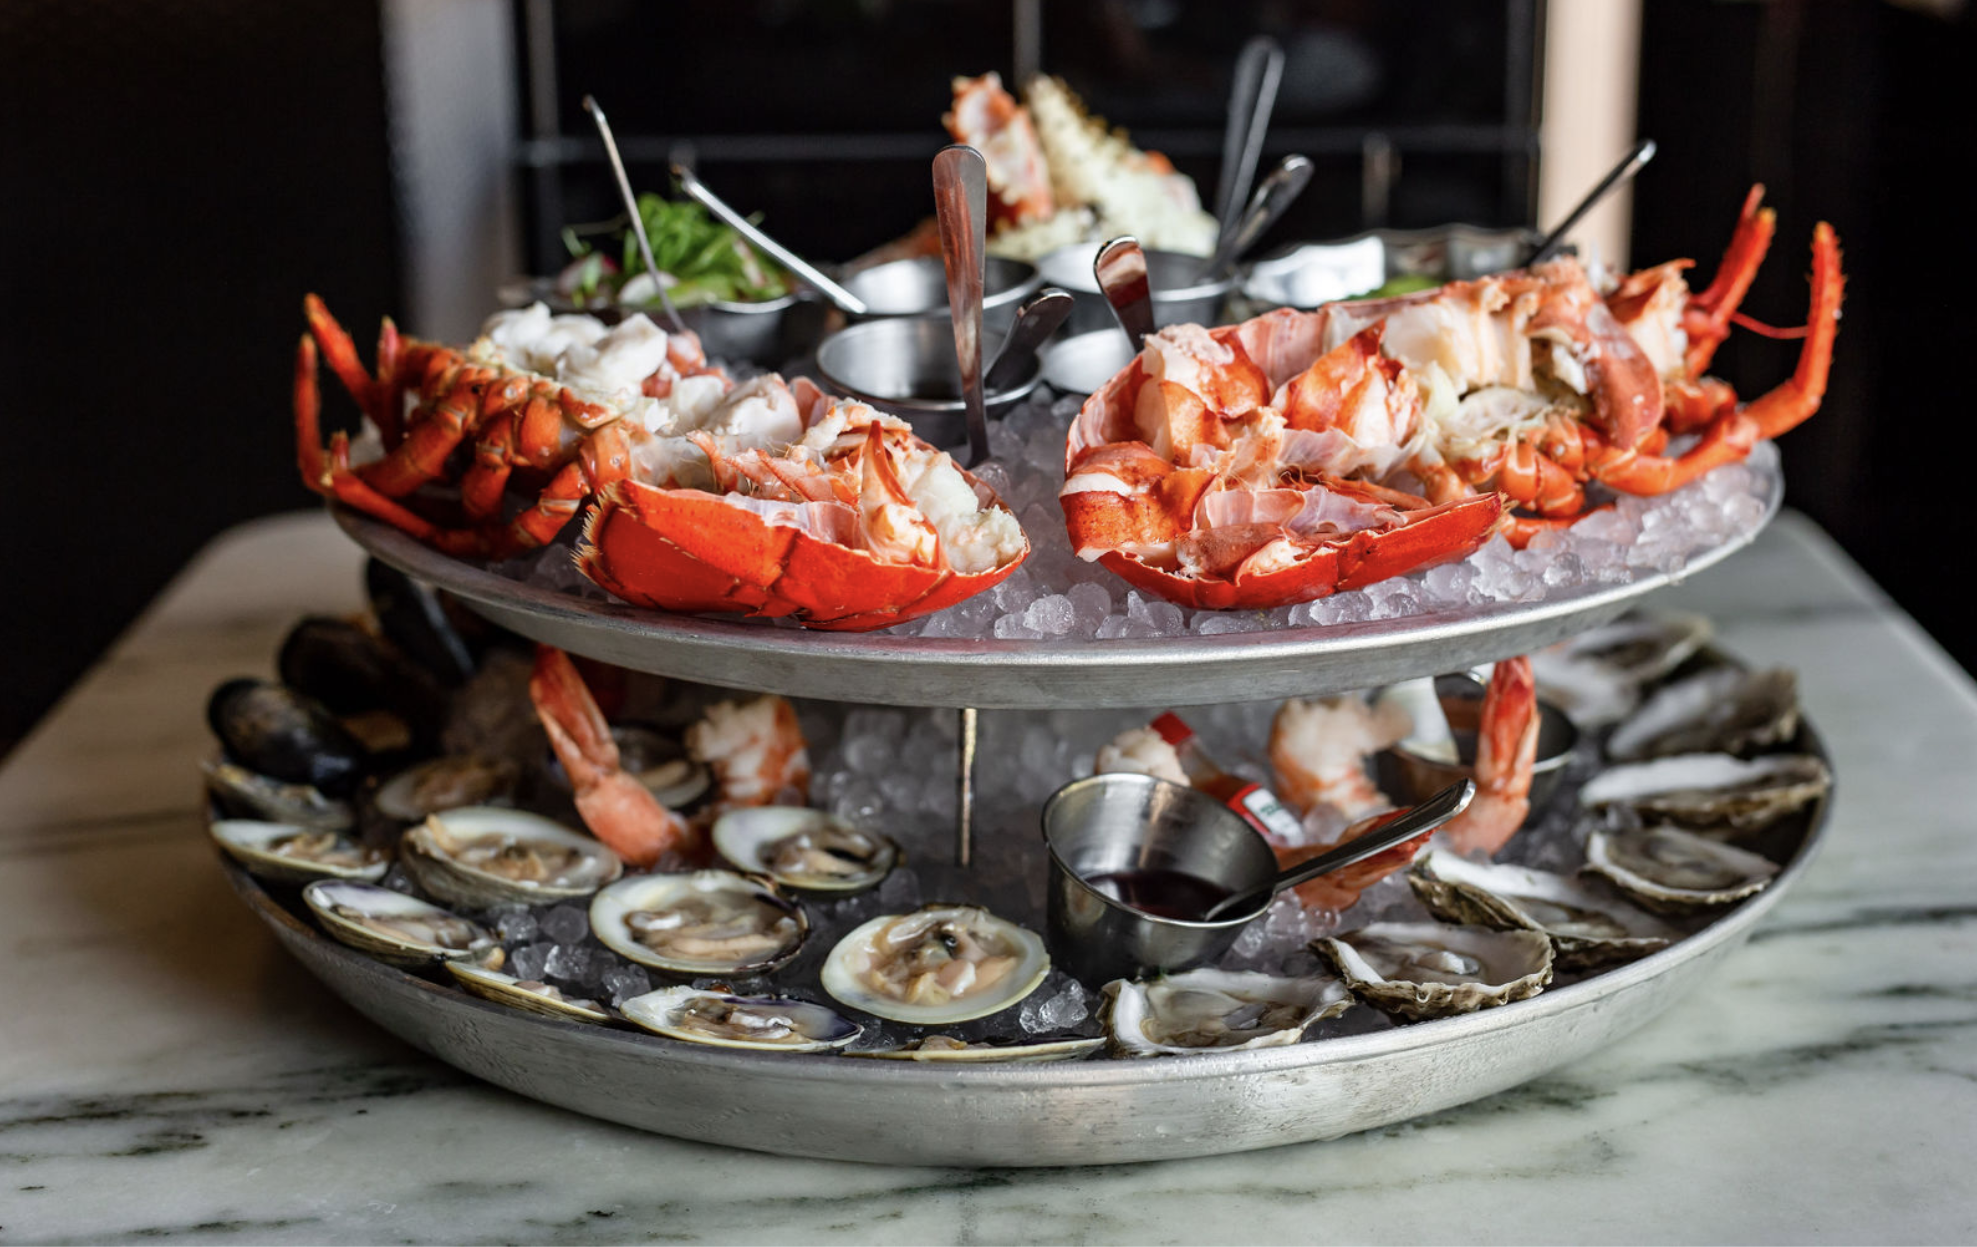 seafood tower with oysters, clams, and lobster tail